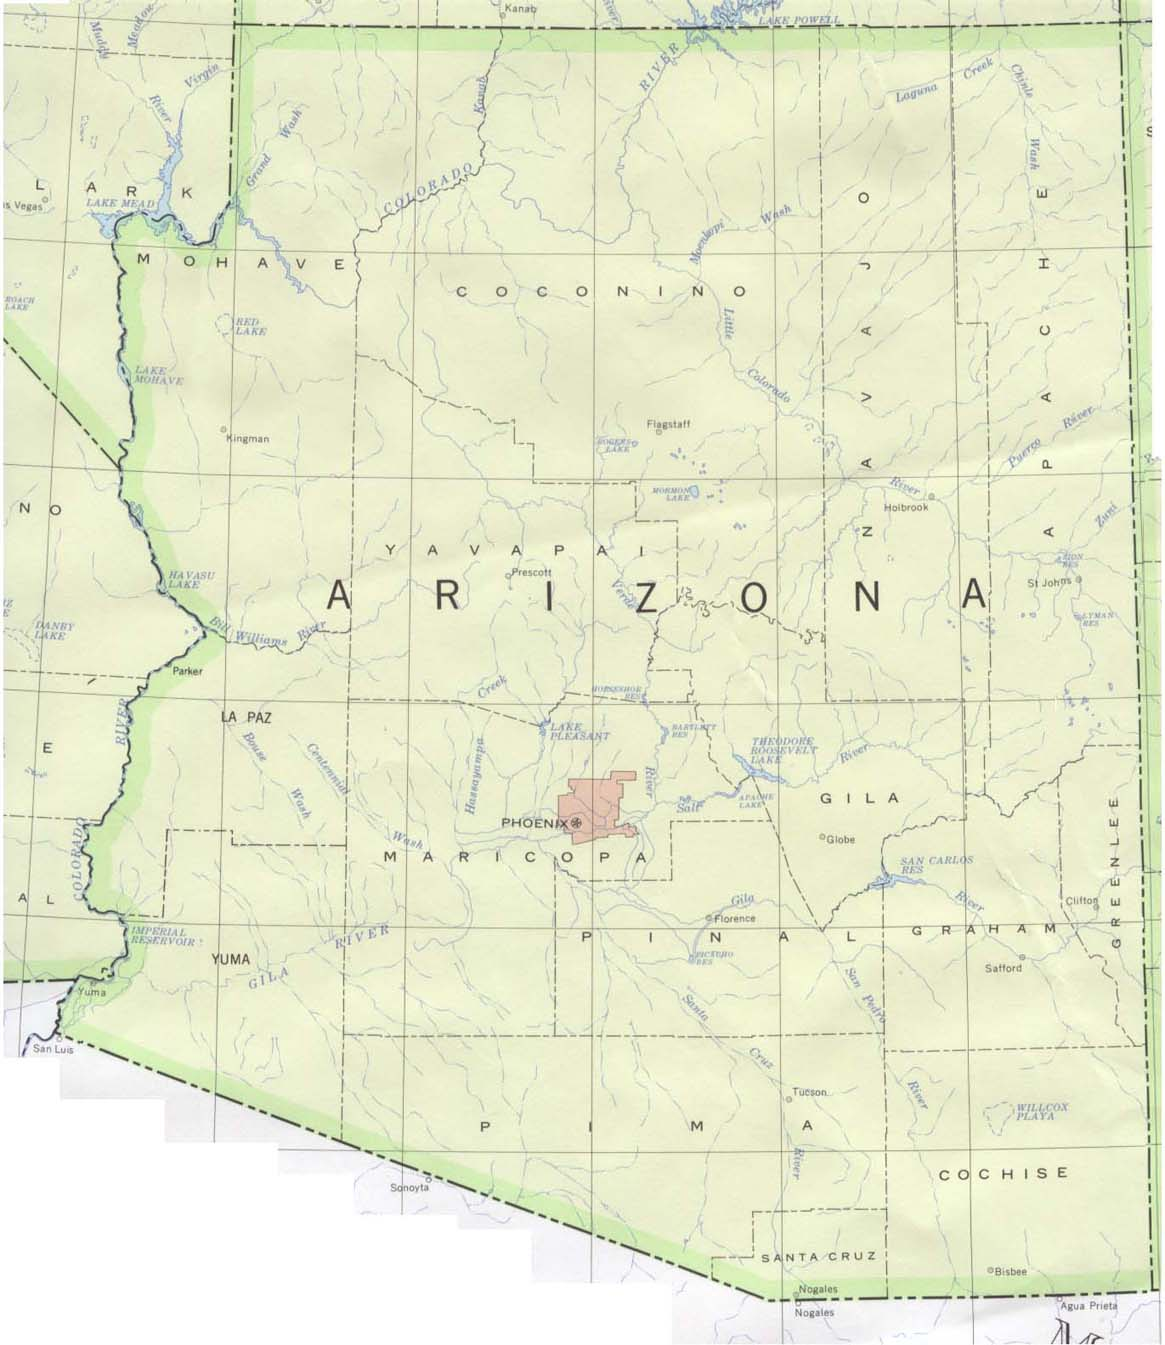 Arizona Outline Maps and Map Links